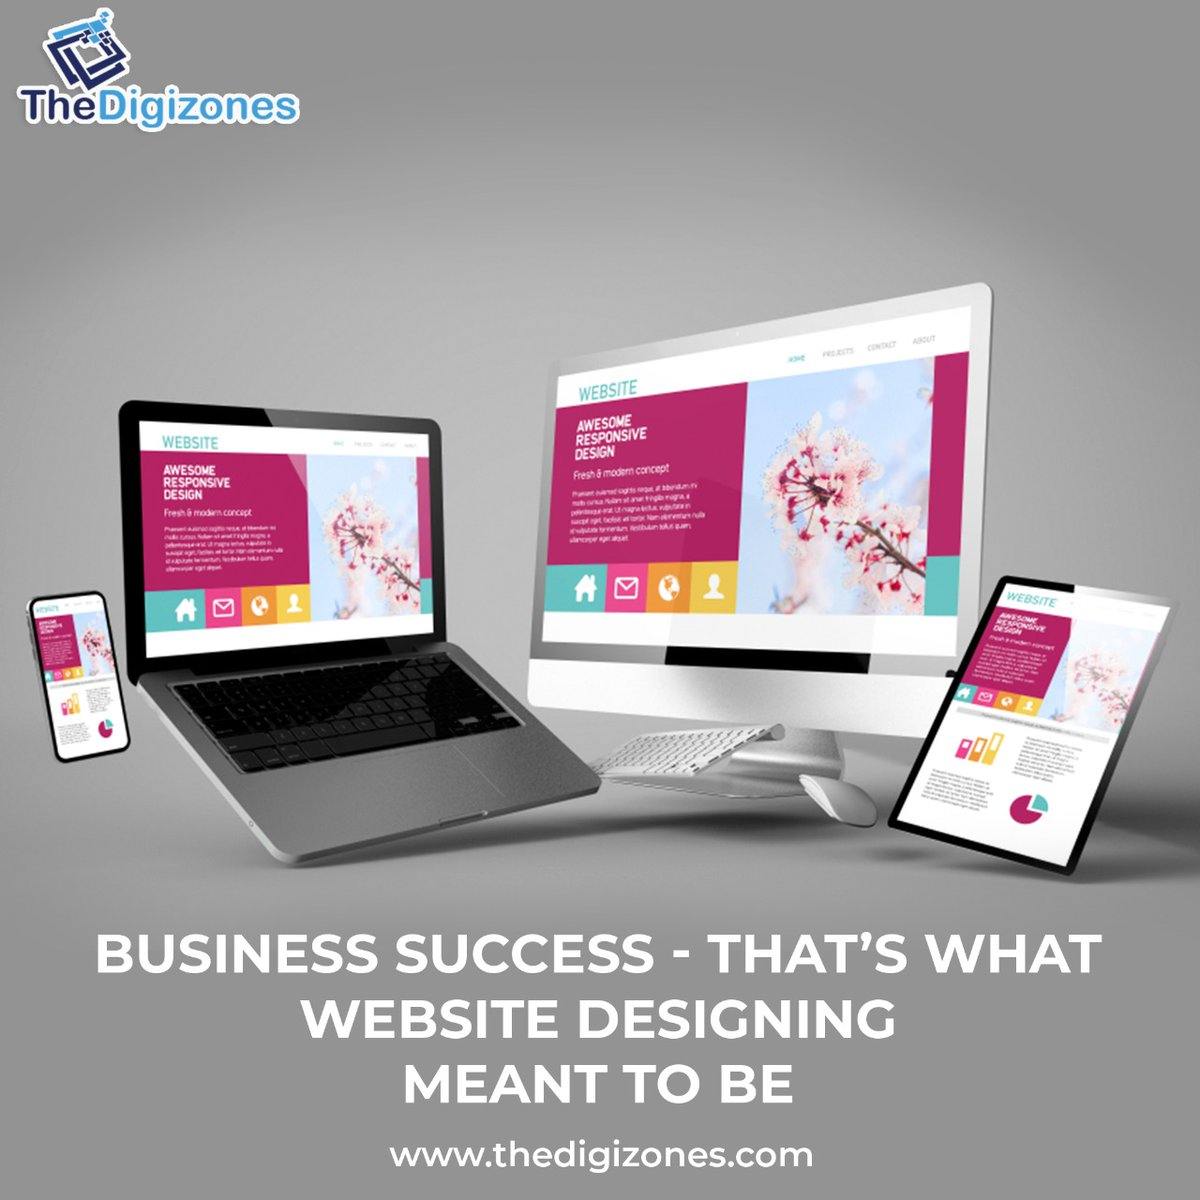 Business Success - That's What Website Designing Meant to Be  Website:-  Email- contact@thedigizones.com Phone no.- +1 8084002436 #website #brand #thedigizones #bestcompany #digitalmarketingagency #ppc #payperclick #contentcreator #emailmarketing #social